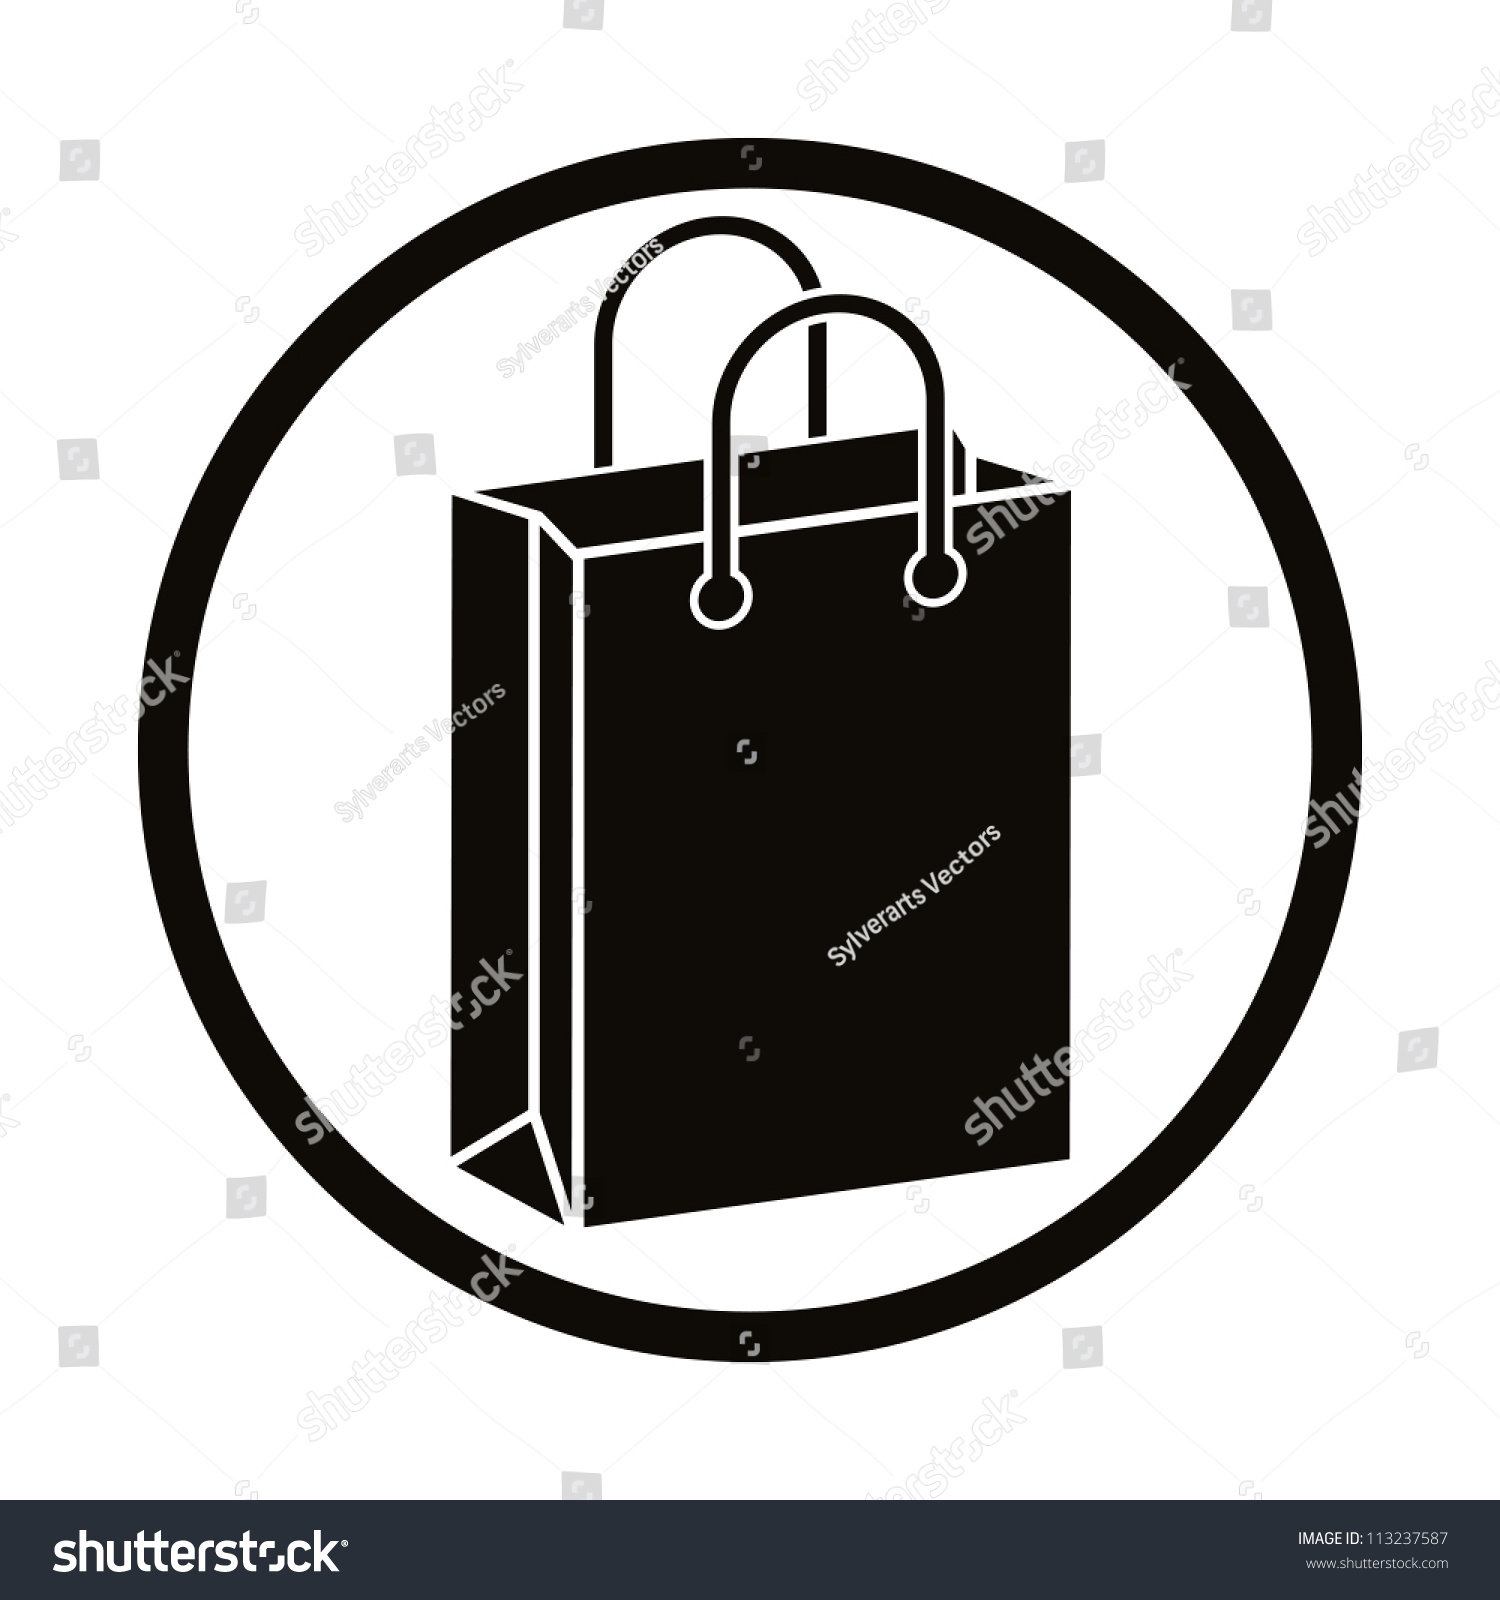 Shopping Bag Vector Icon Stock Vector 113237587 - Shutterstock